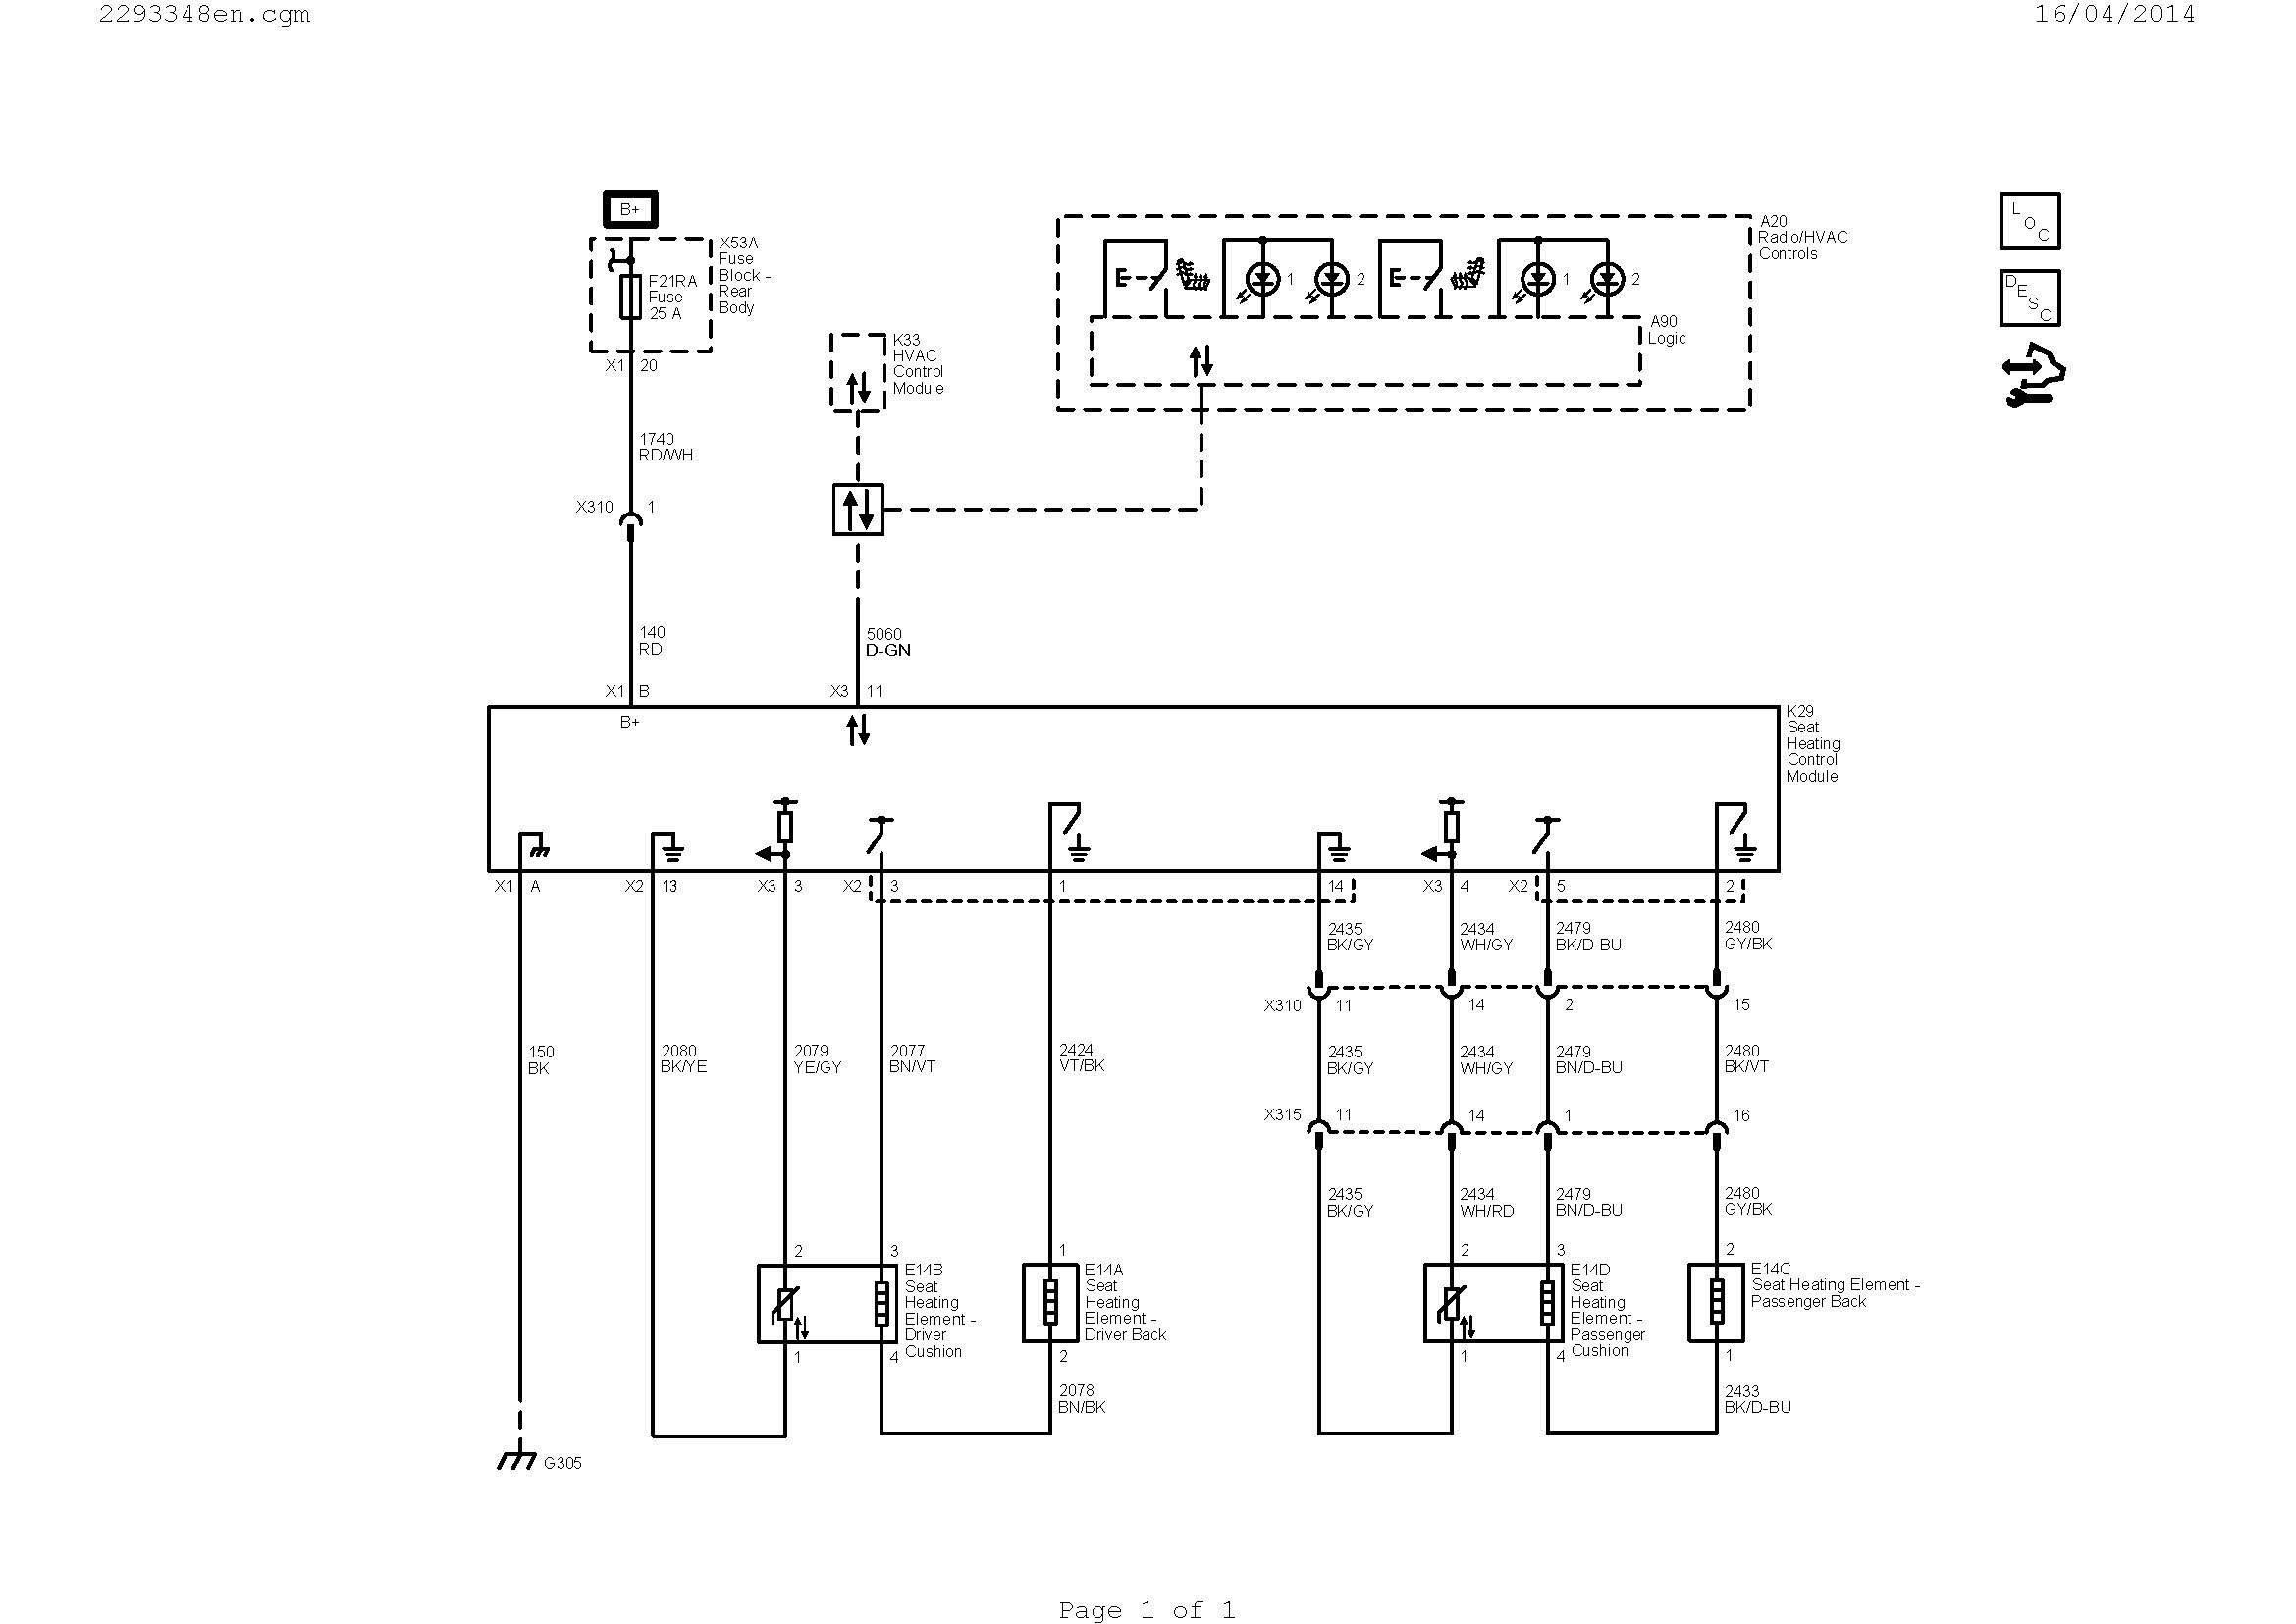 powerstat wiring diagram Download-electric heater wiring diagram Collection Wiring Diagrams For Central Heating Refrence Hvac Diagram Best Hvac DOWNLOAD Wiring Diagram 1-c